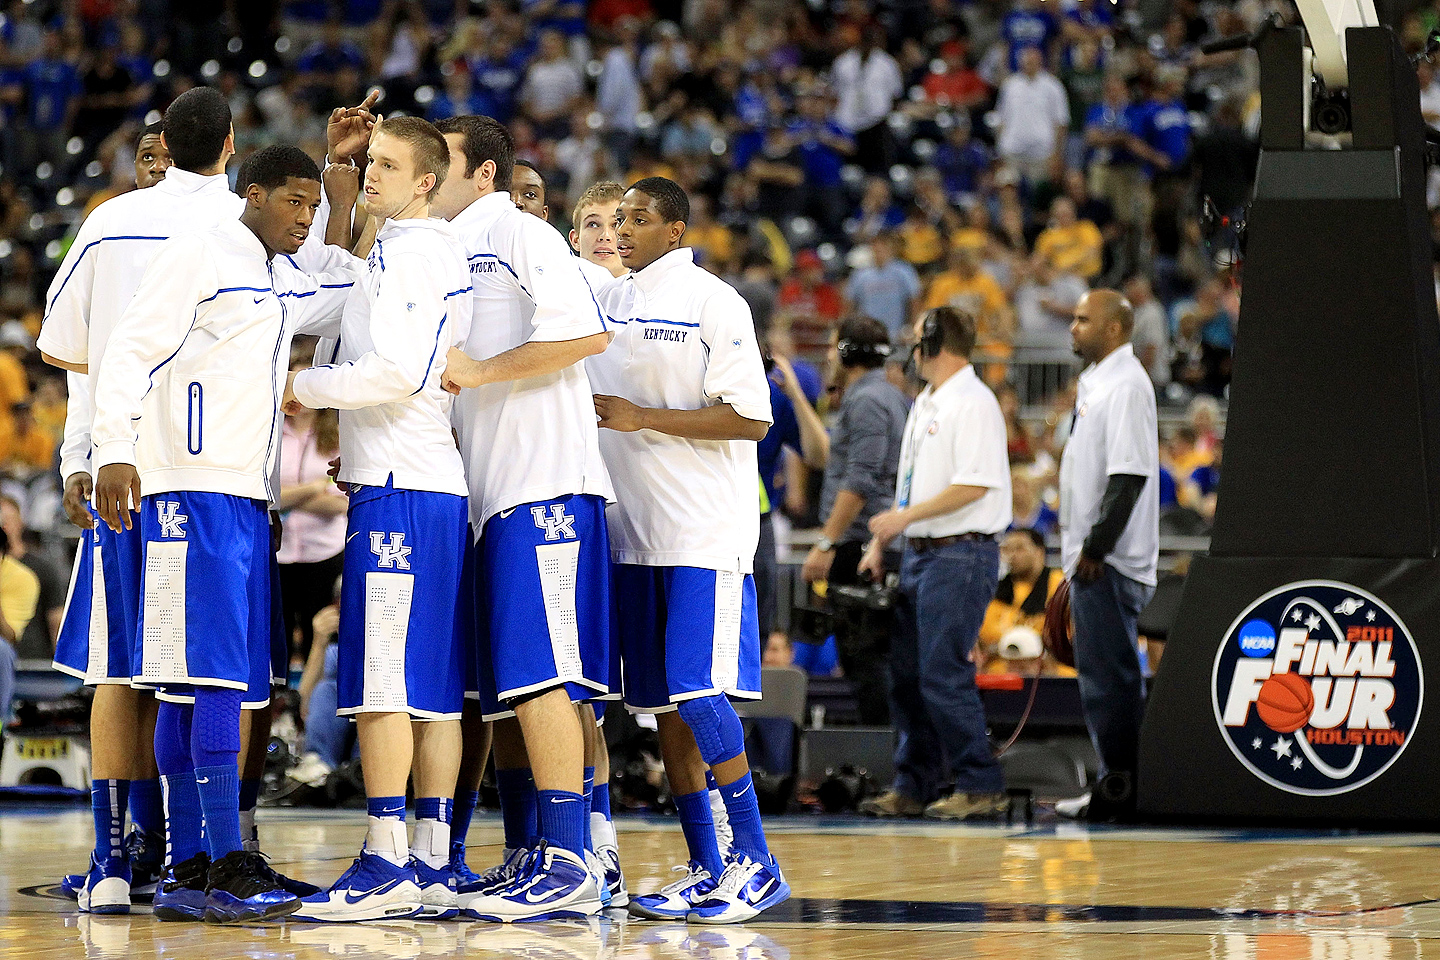 Kentucky Wildcats huddle